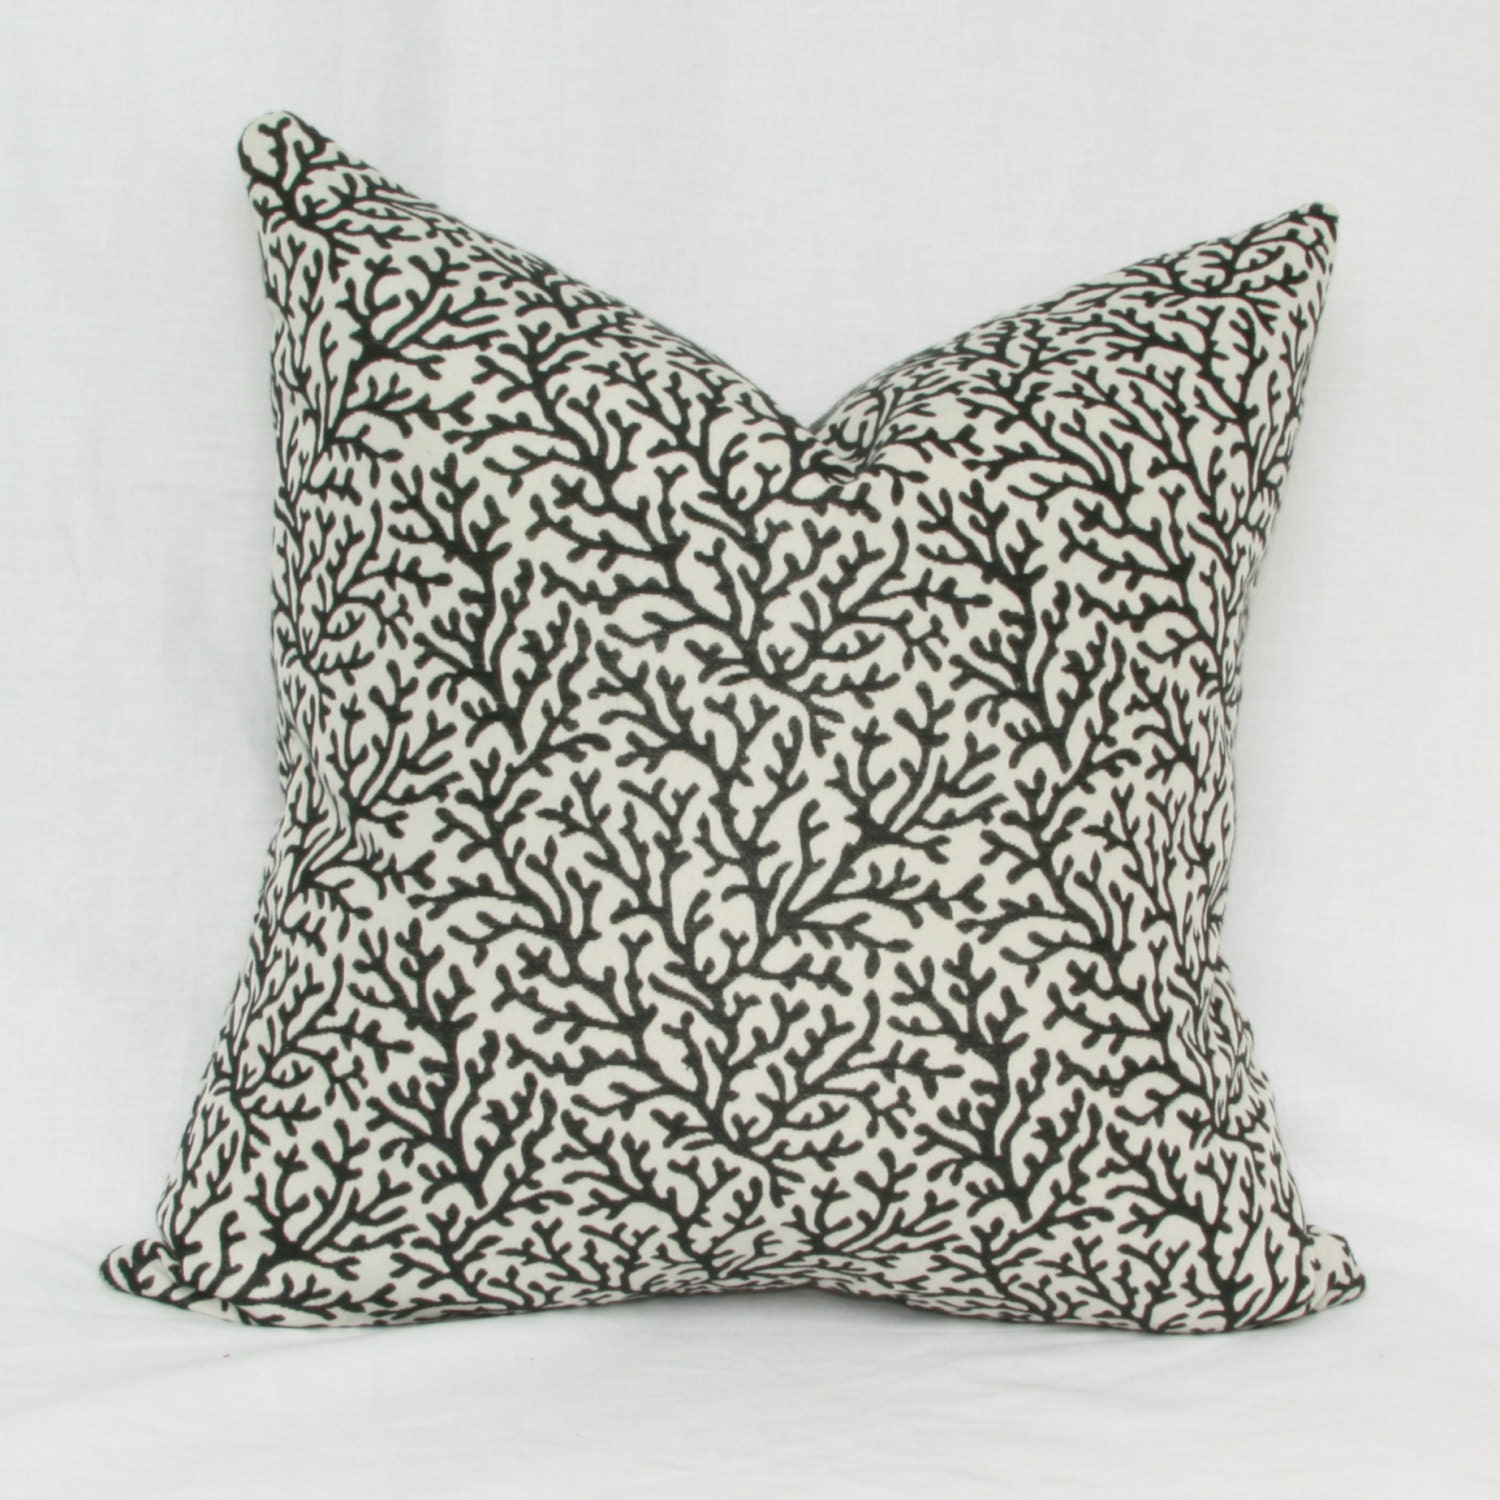 Dark Coral Throw Pillows : Items similar to Black & white coral reef decorative throw pillow cover. 18 x 18. 20 x 20. on Etsy